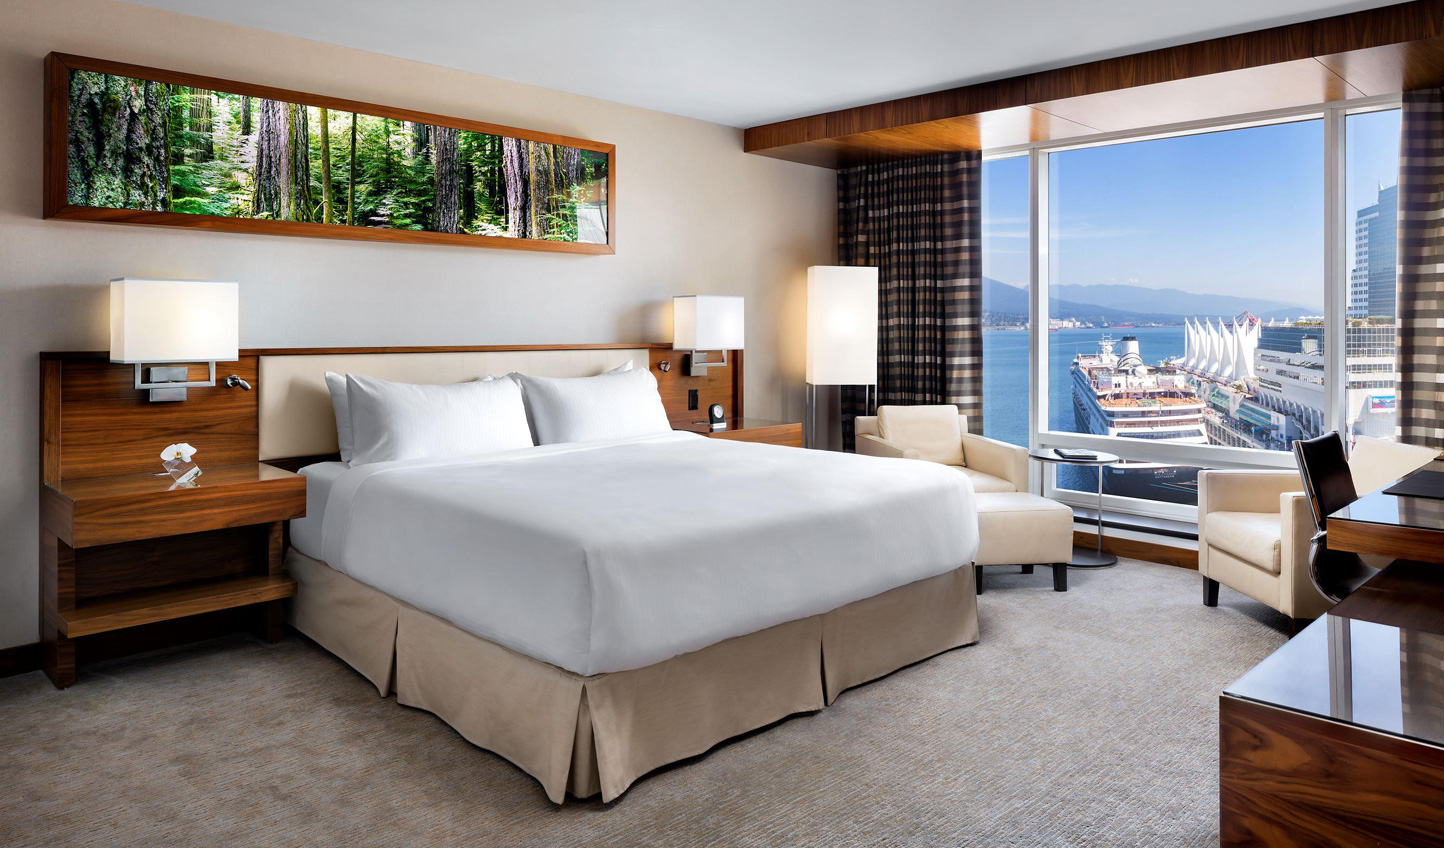 Wake up to views over Vancouver harbour at Fairmont Pacific Rim